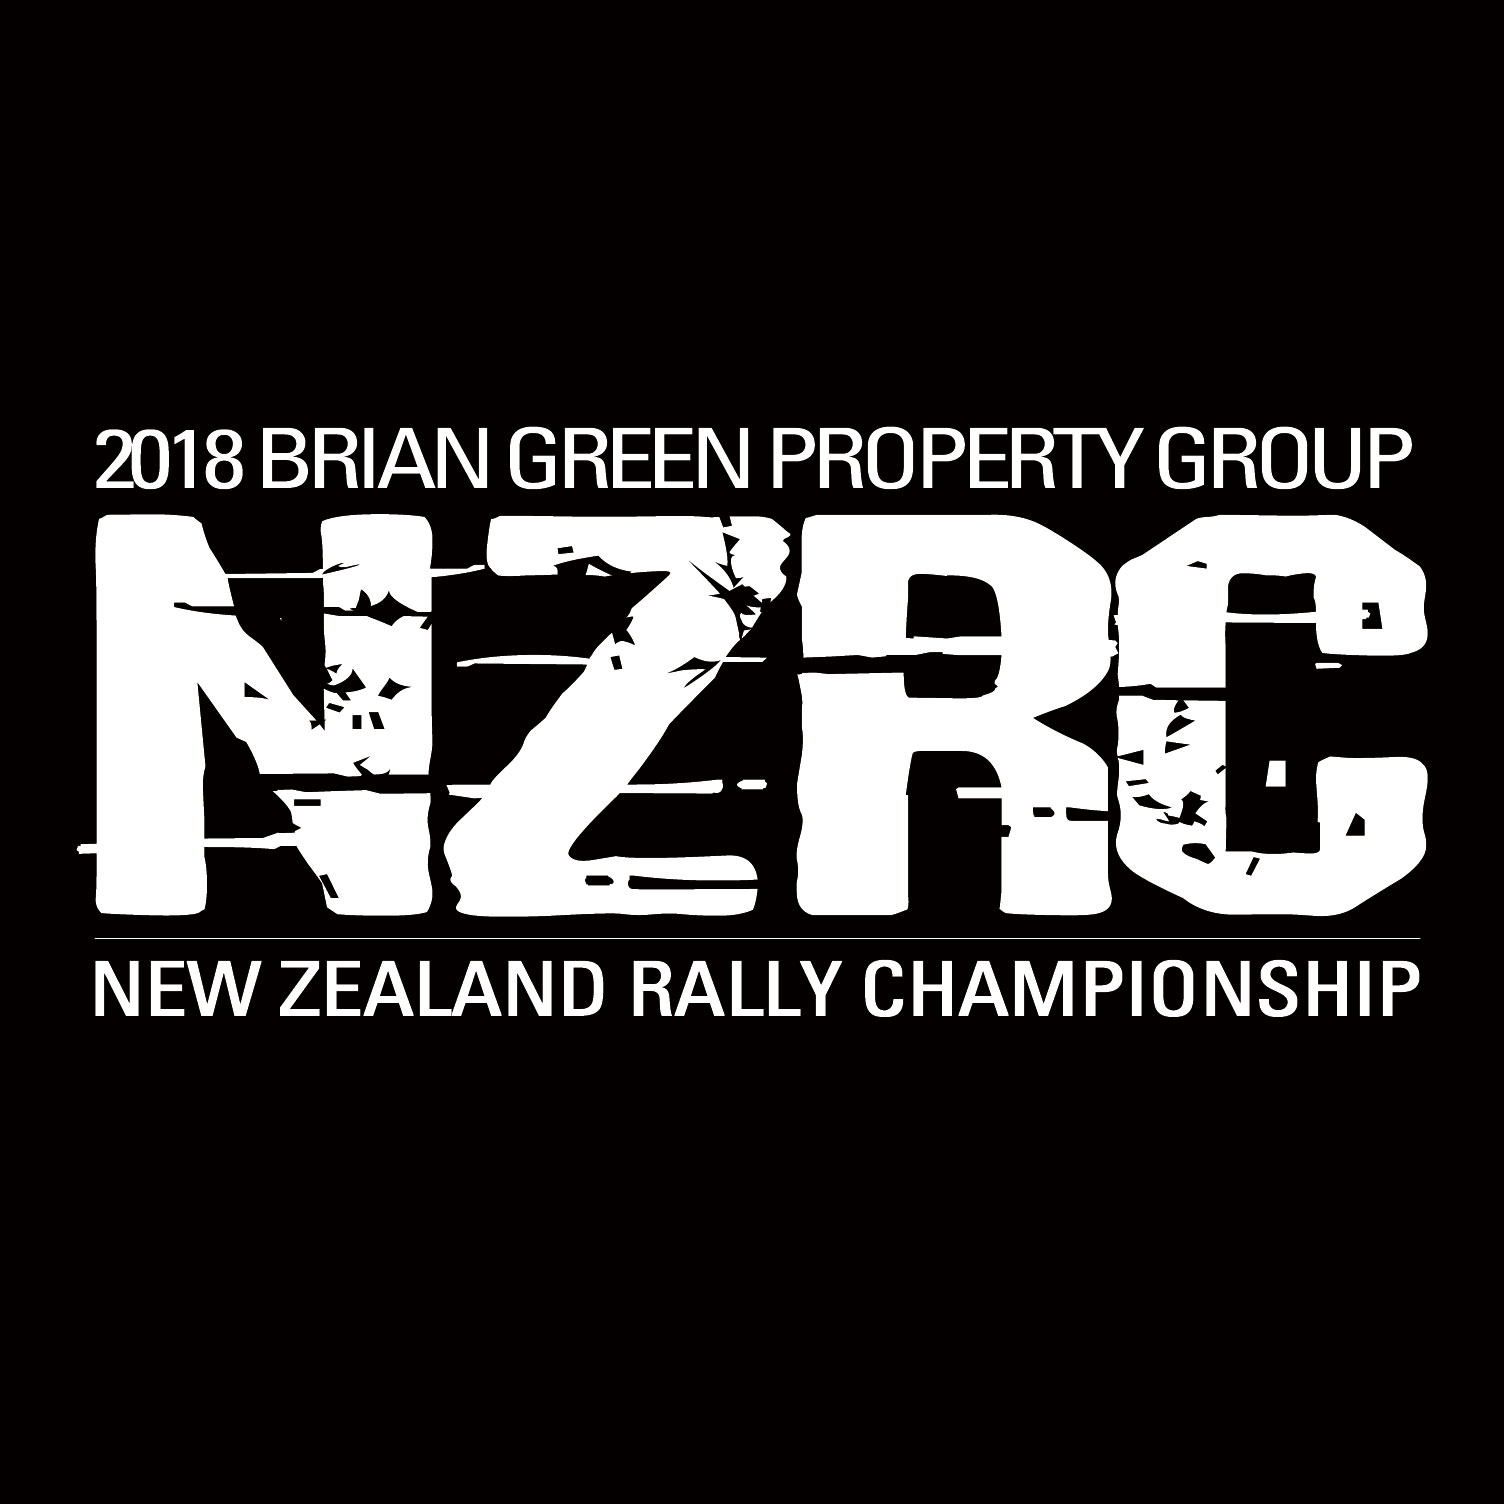 Three rallies, three cars and three top finishes for Quinn | :: Brian Green Property Group New Zealand Rally Championship ::